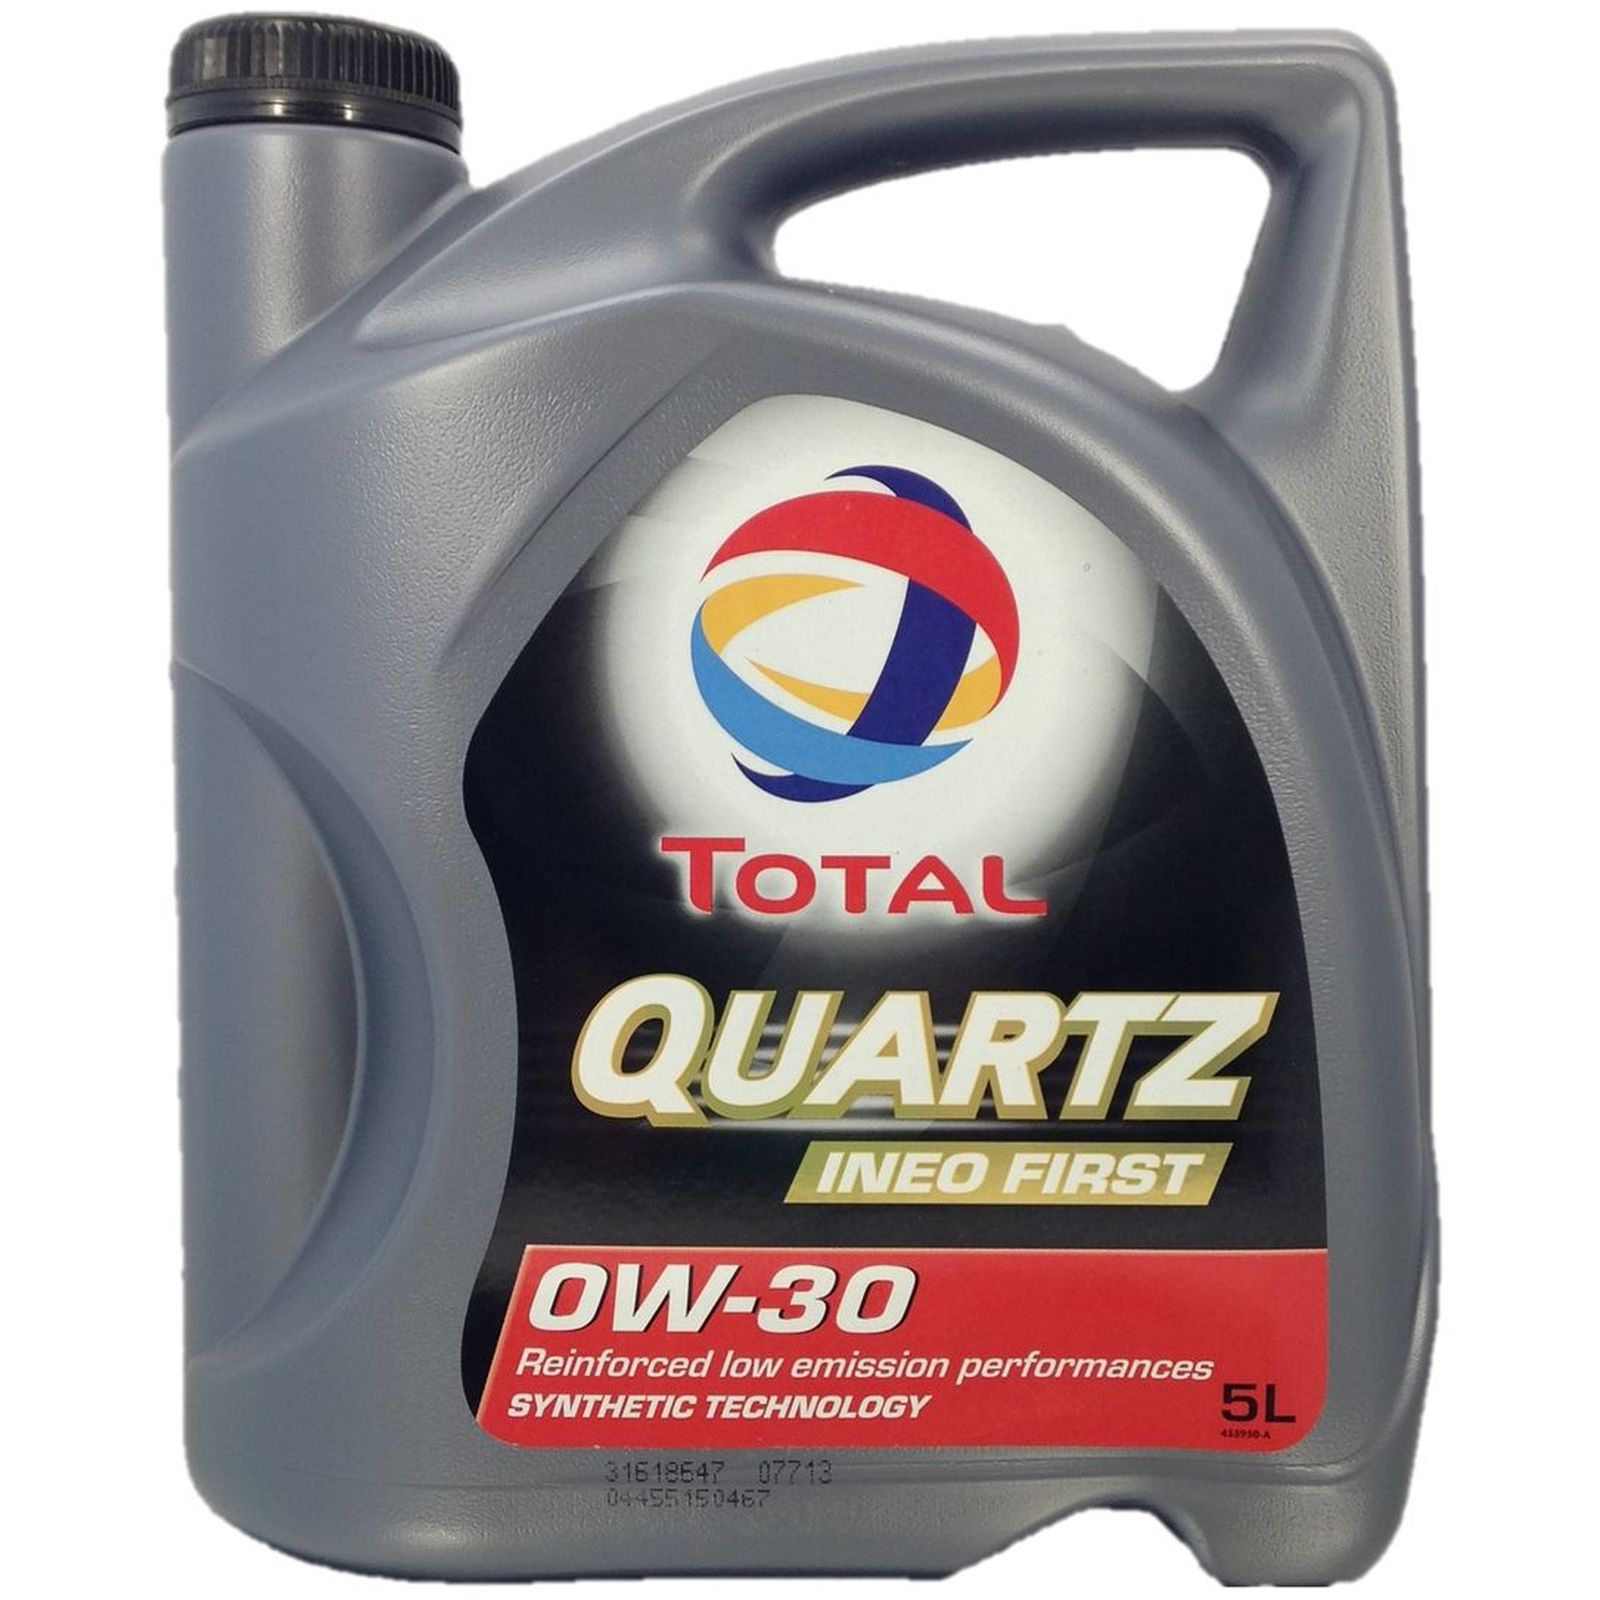 5 Liter Total QUARTZ INEO FIRST 0W-30